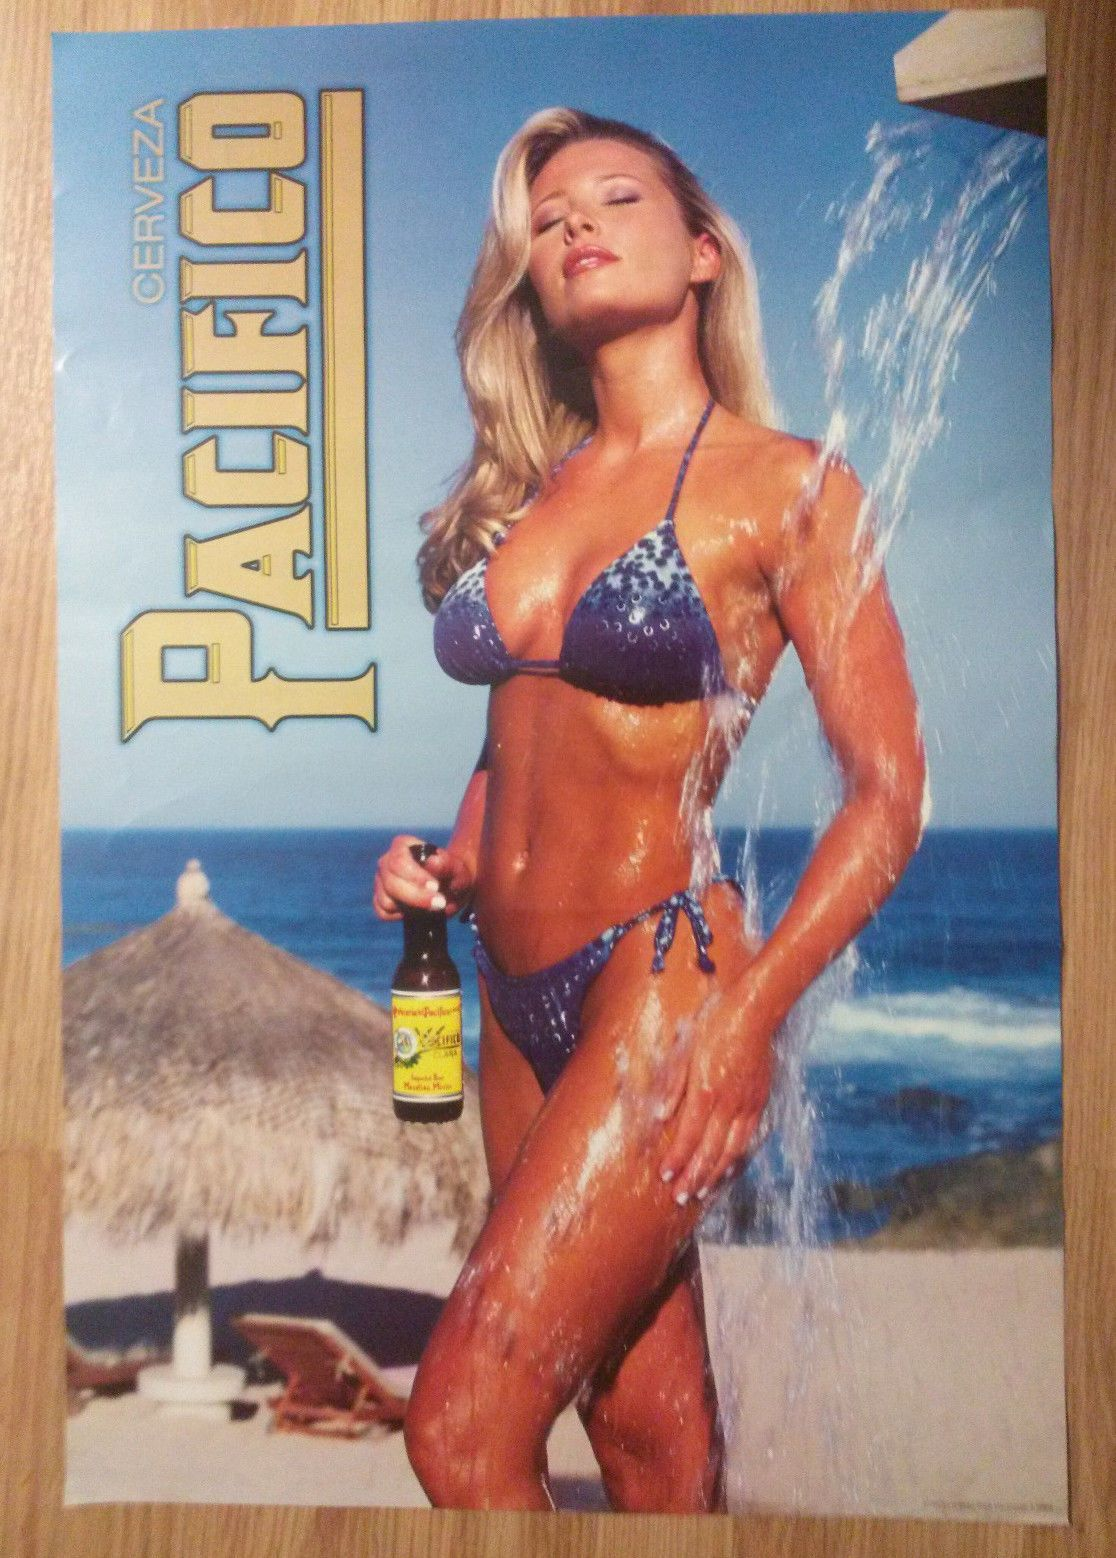 9c9cfc932d7 Sexy Girl Beer Poster Pacifico Blonde Blue Bikini Beach Shower | eBay